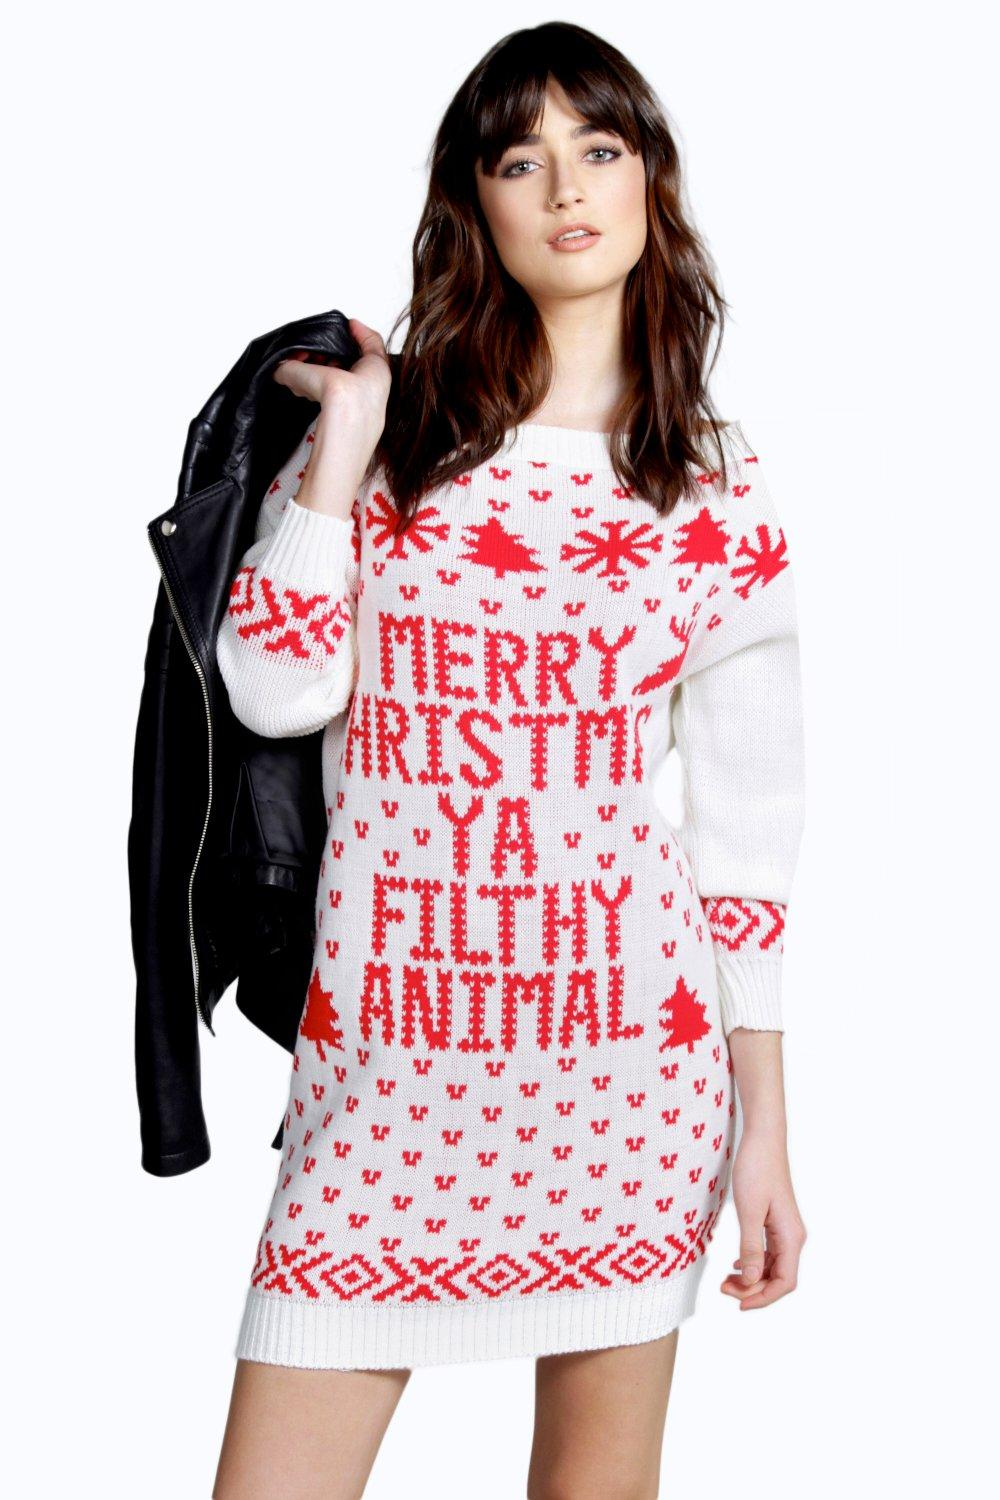 Lara Filthy Animal Christmas Jumper Dress